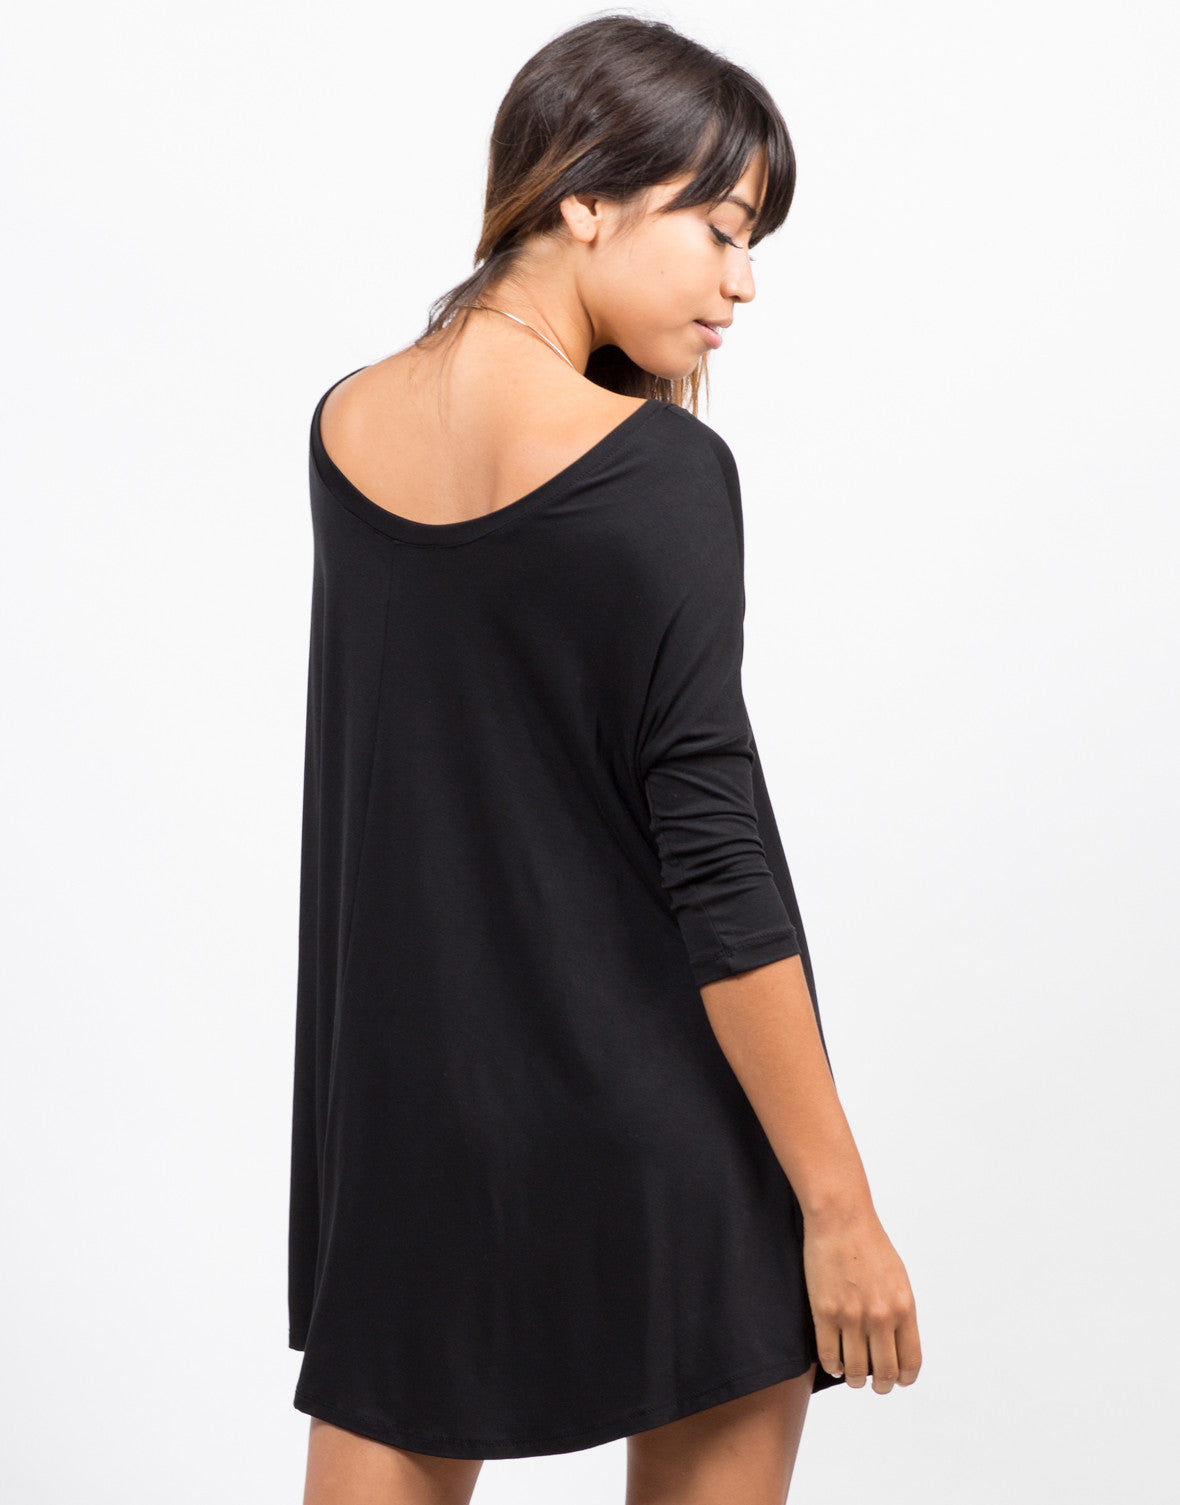 Back View of Oversize T-Shirt Dress